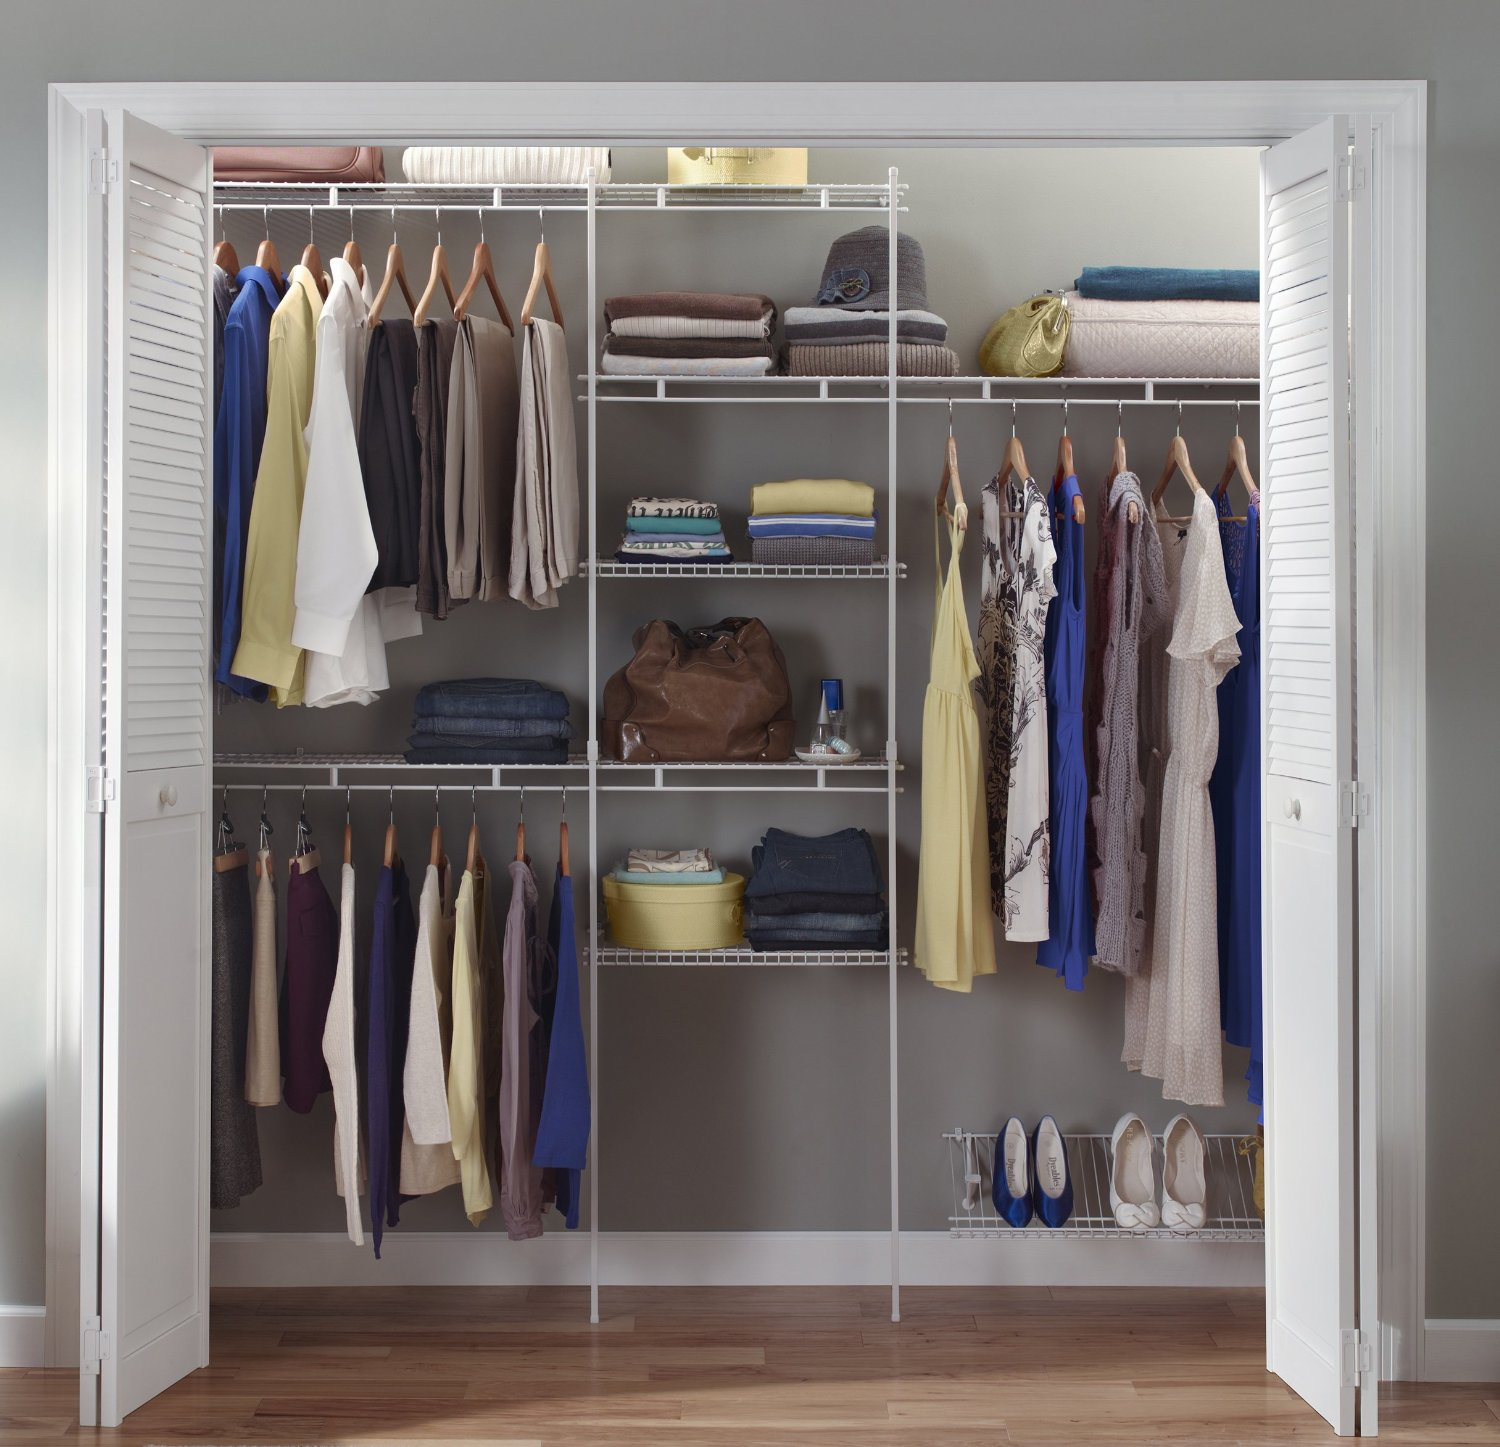 Closetmaid closet organizer kit 5 to 8 feet white color Pictures of closet organizers